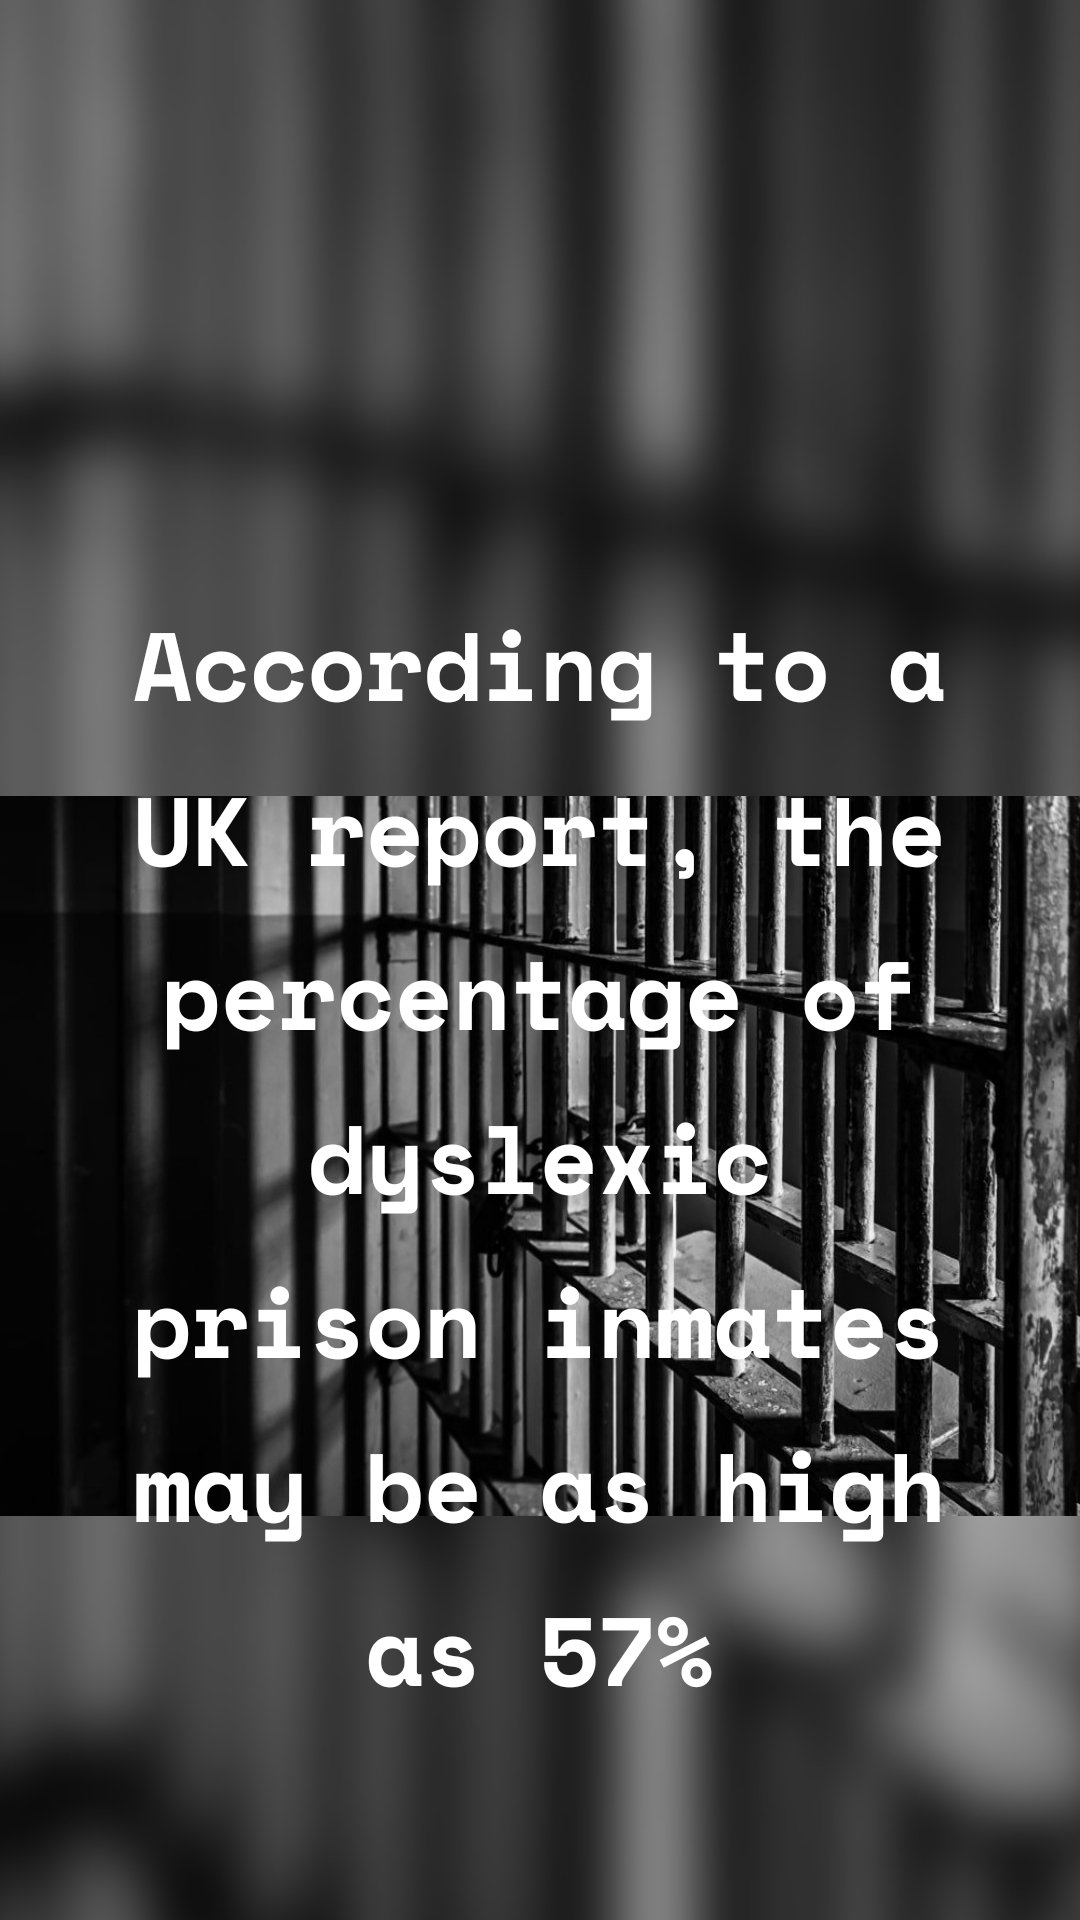 According to a UK report, the percentage of dyslexic prison inmates may be as high as 57%